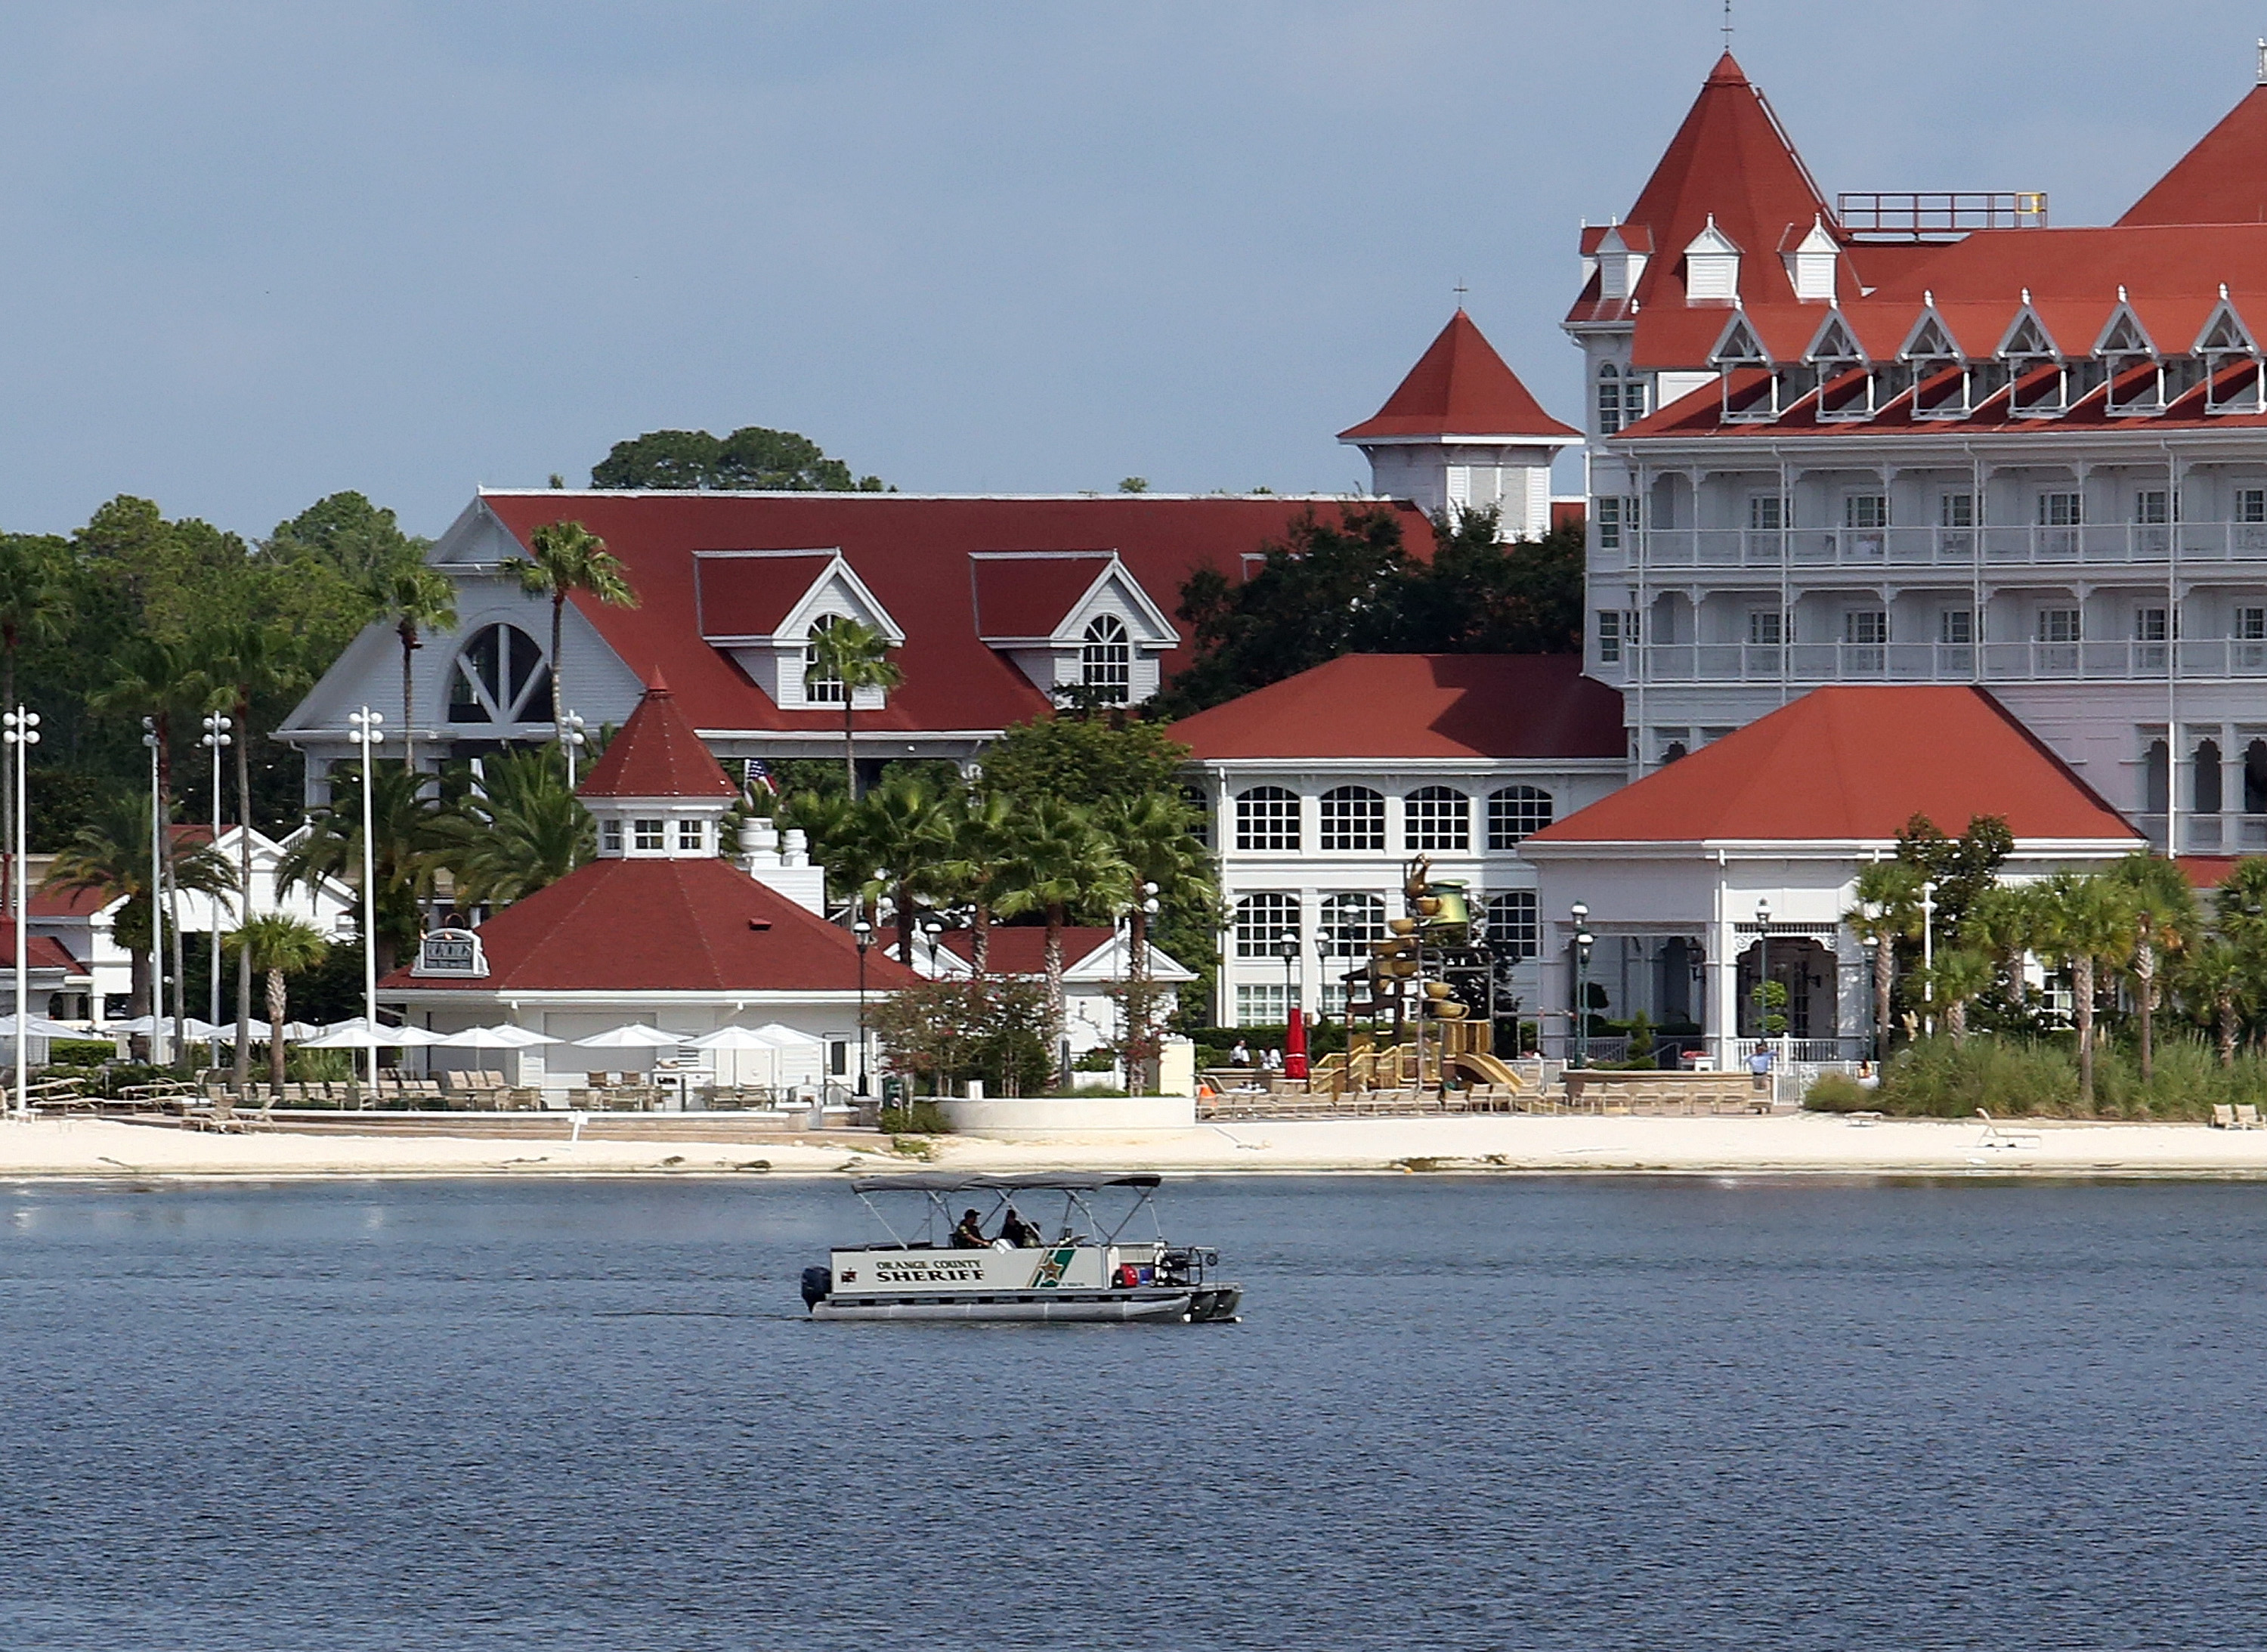 Child dragged into water by gator near Disney's Grand Floridian